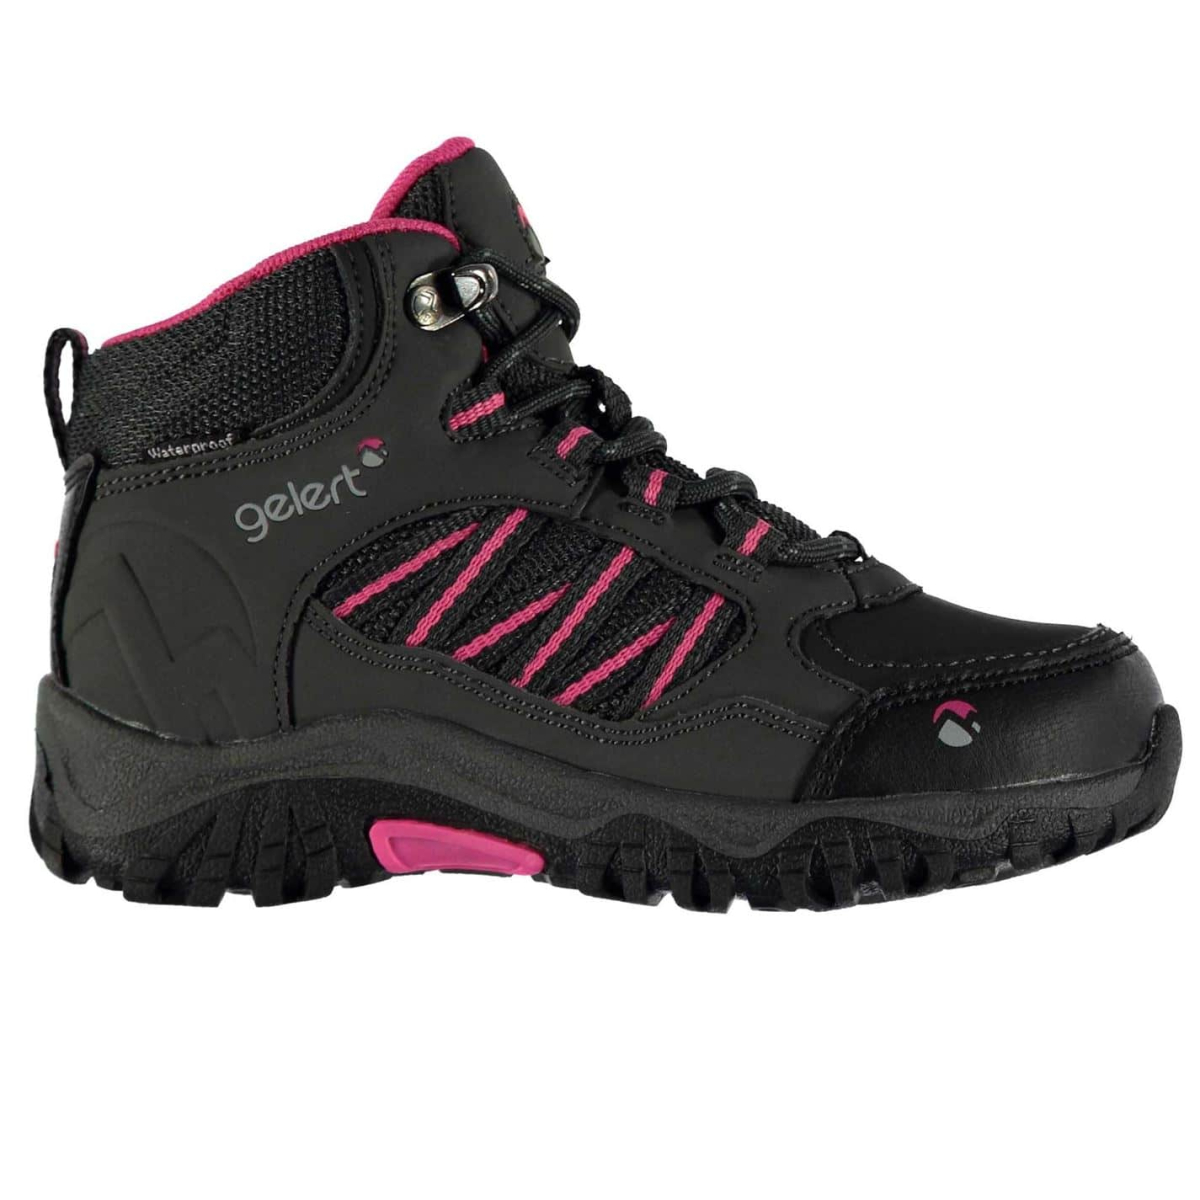 Gelert Horizon Waterproof Kinder Wanderstiefel